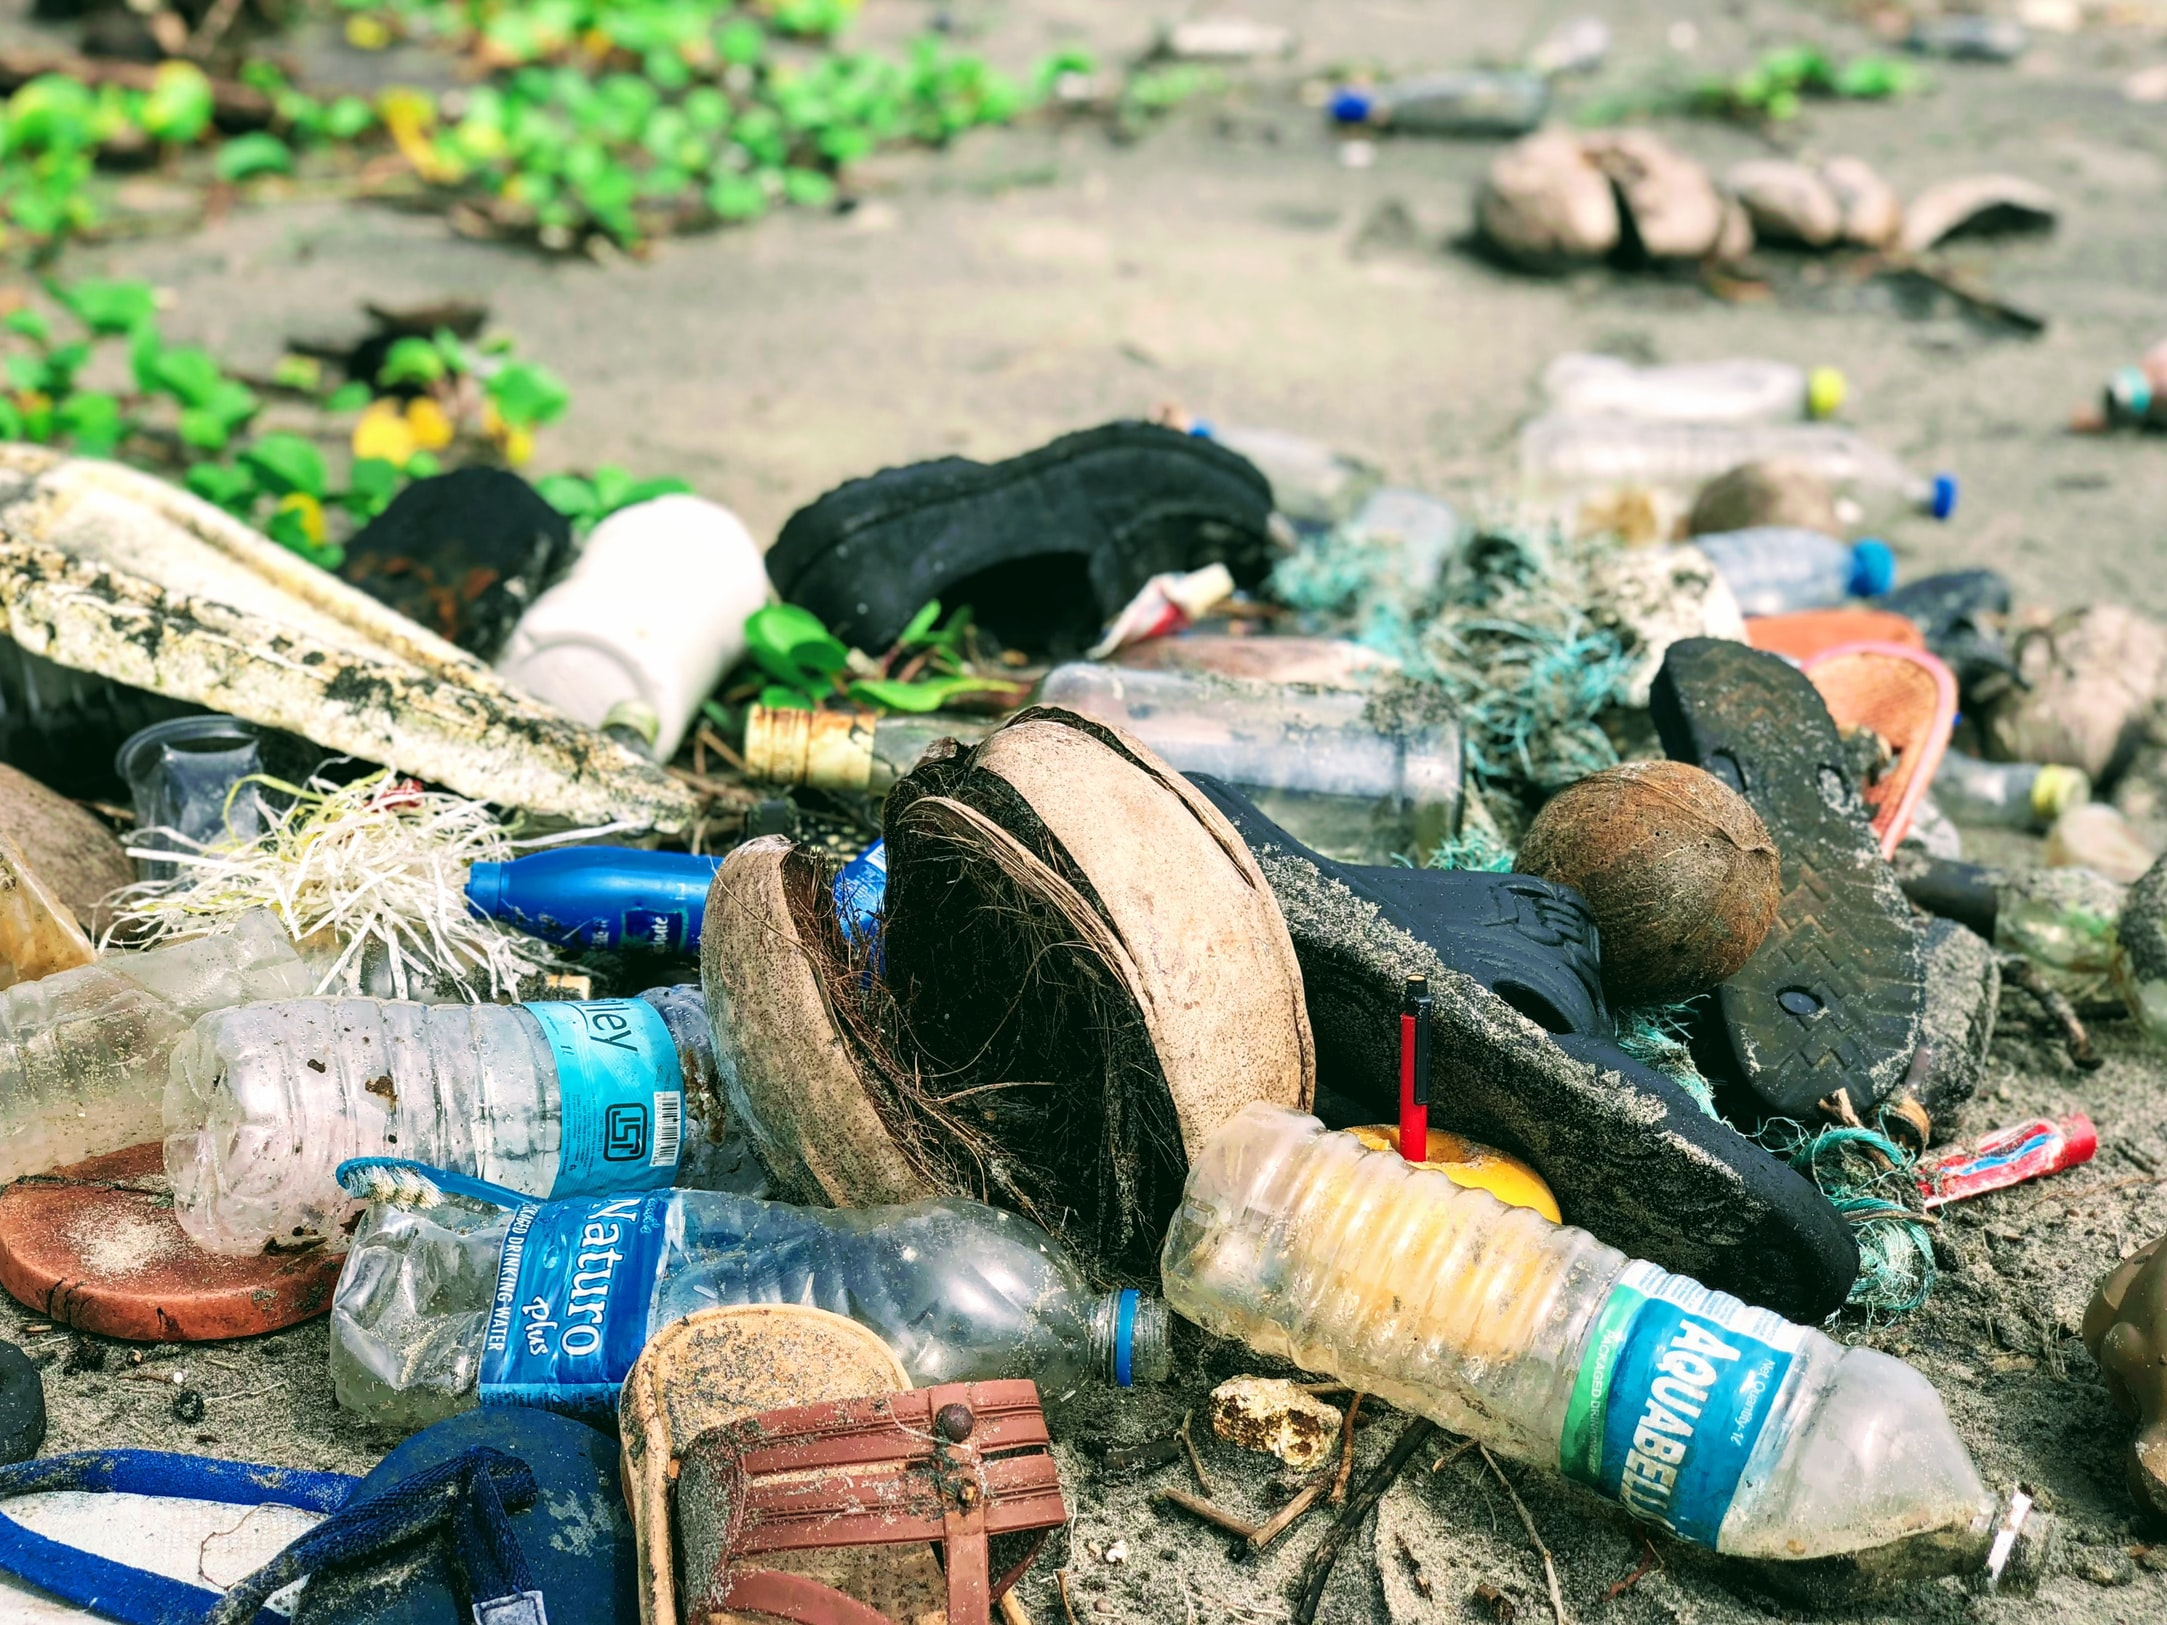 Waste is a typical byproduct of living a modern life but it is reeking havoc on our environment